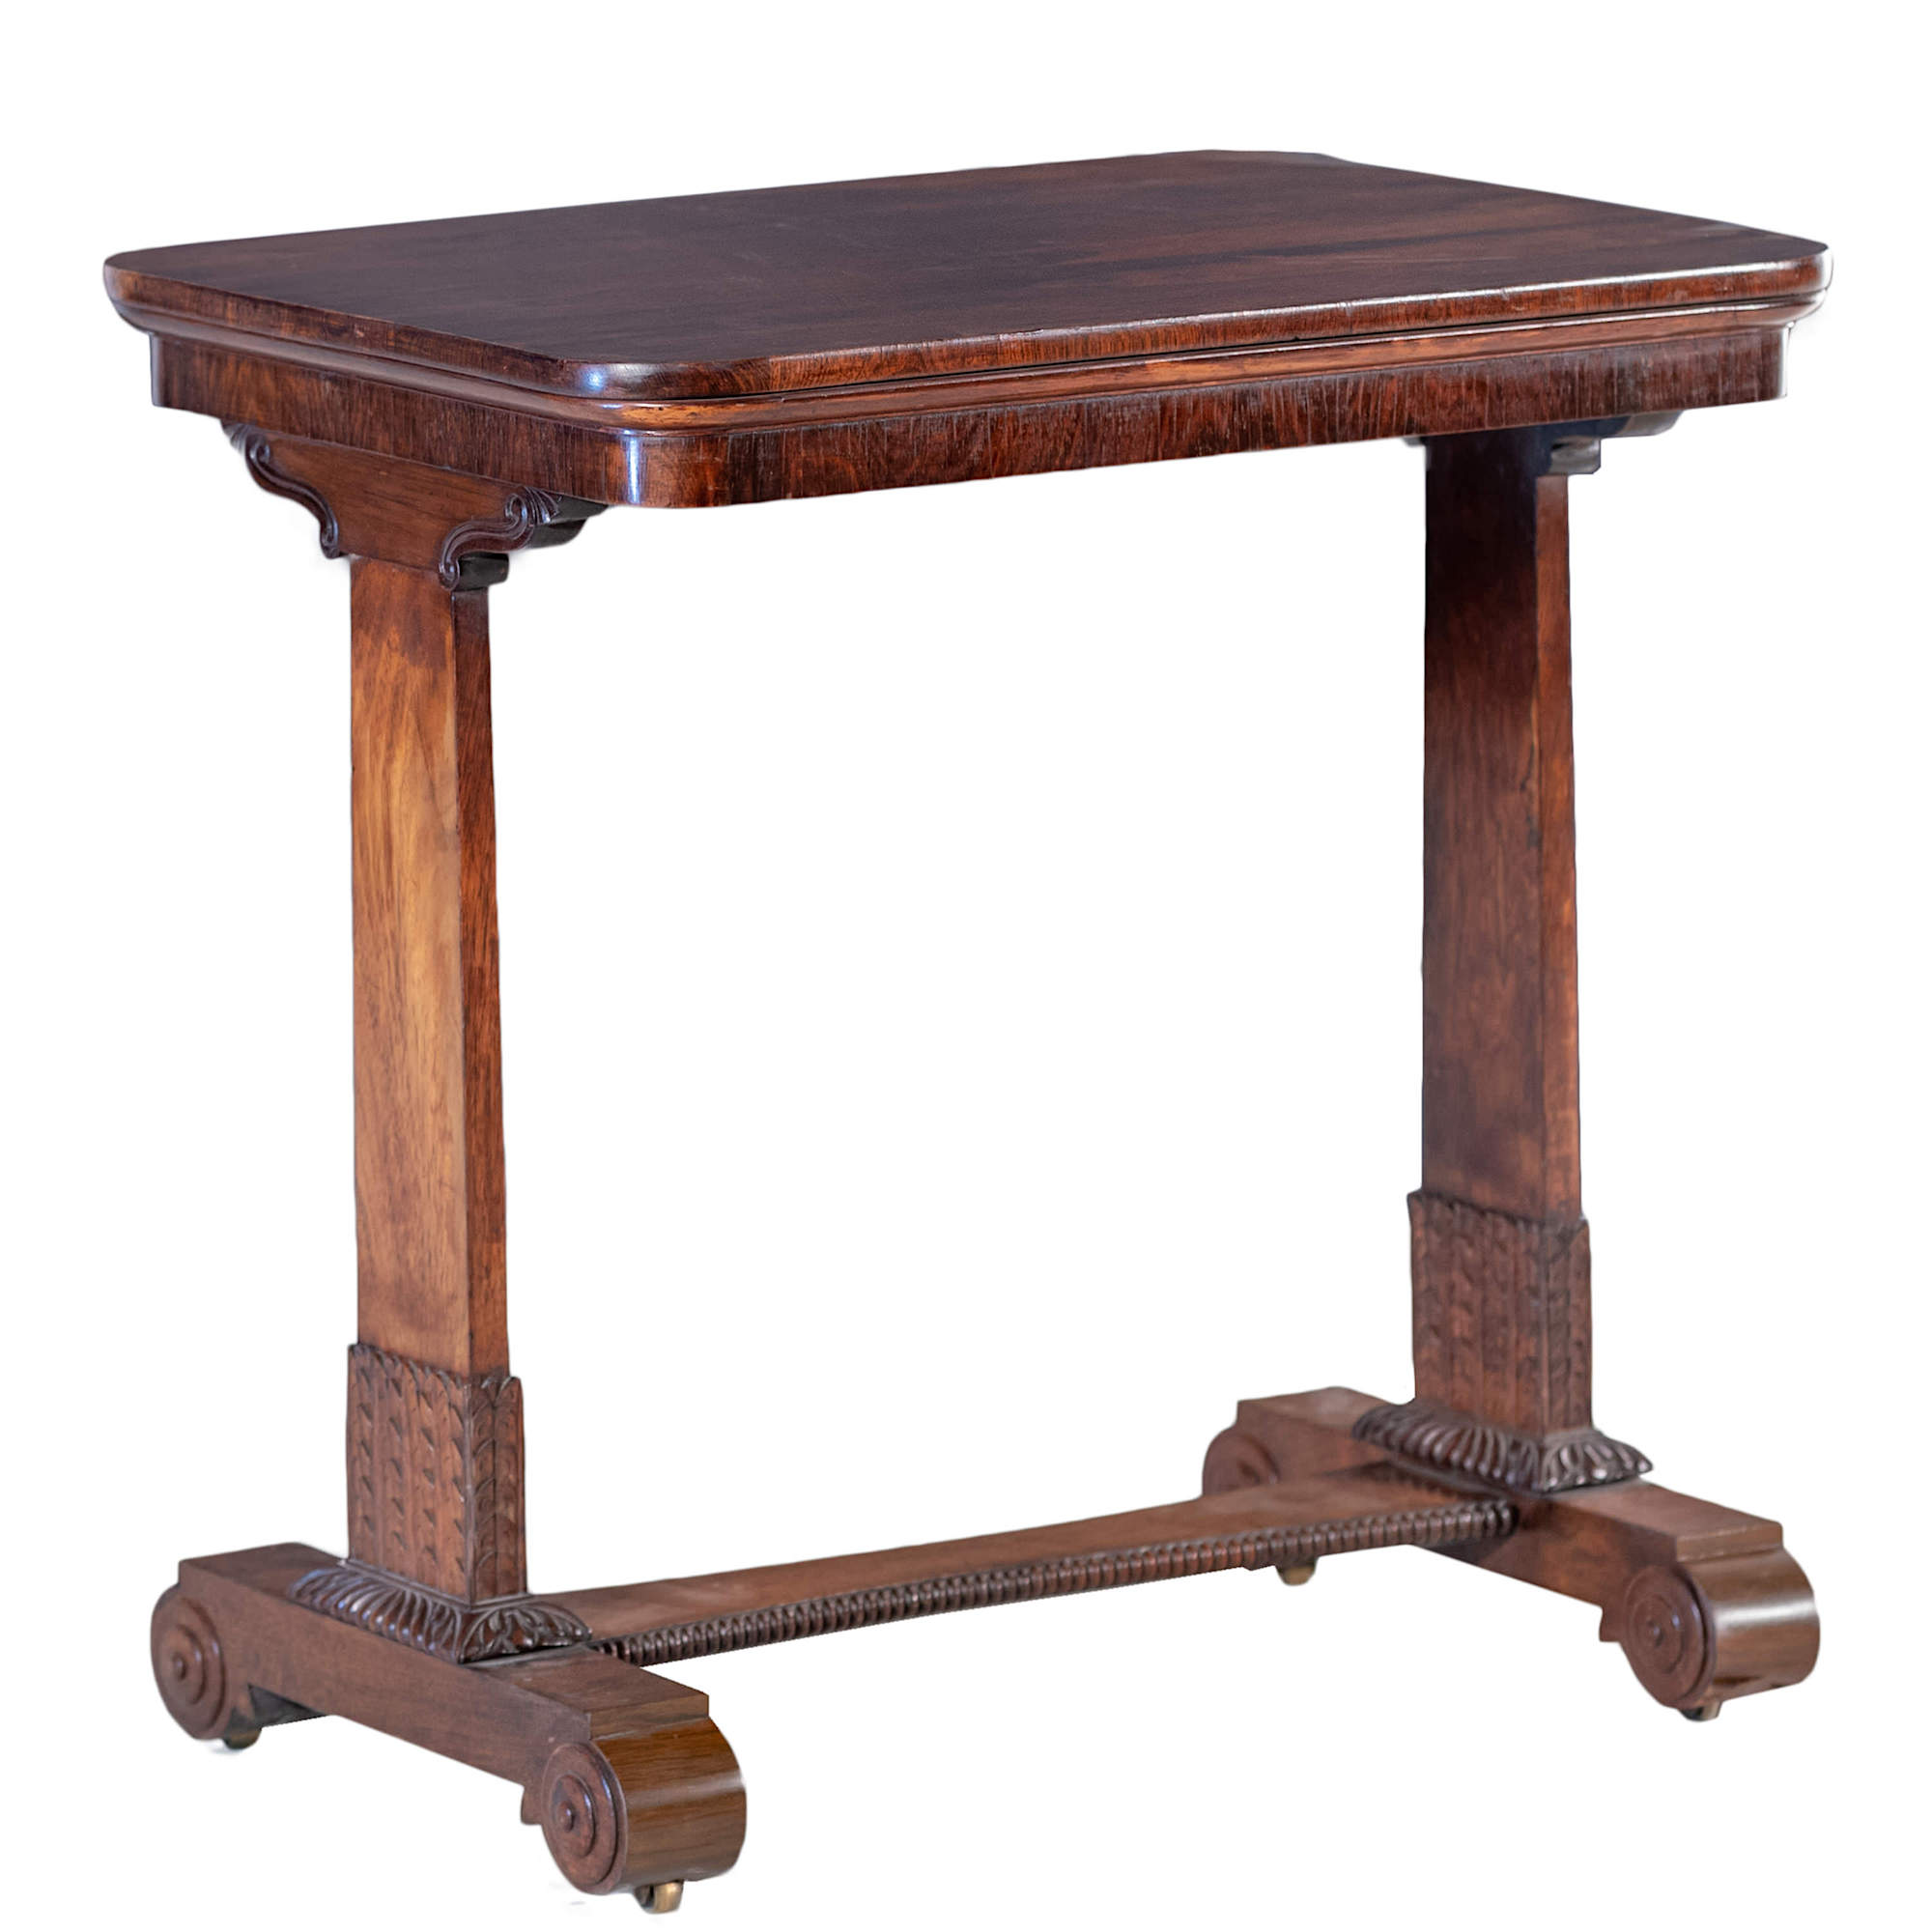 'George IV Regency Style Rosewood Occasional Table Circa 1830'